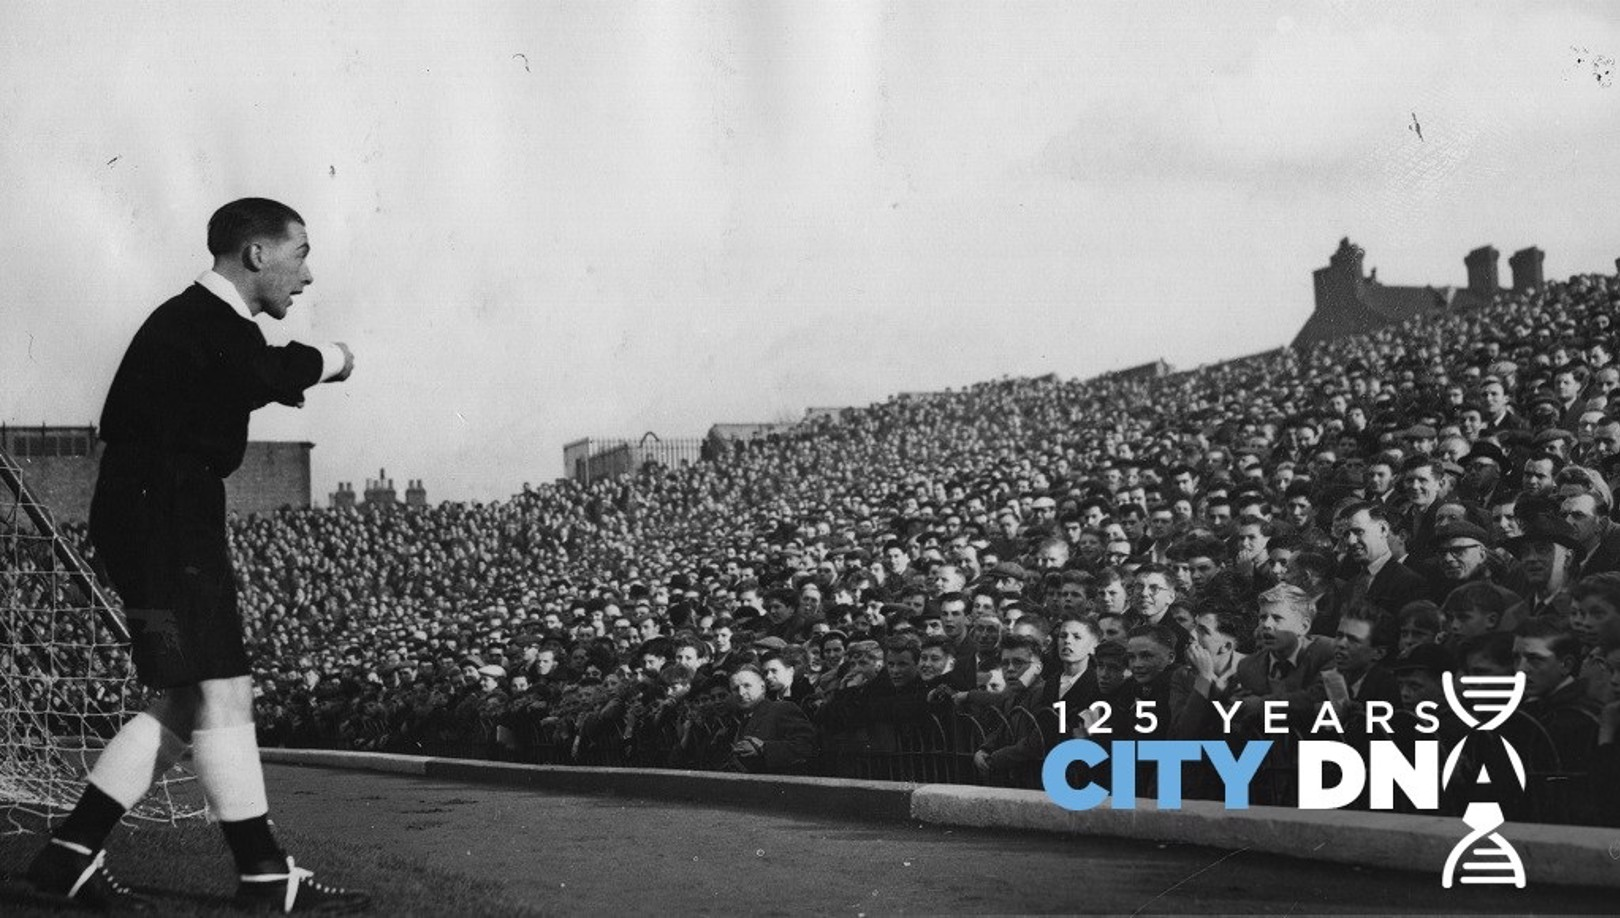 City DNA #86: The season that rained goals - at both ends!